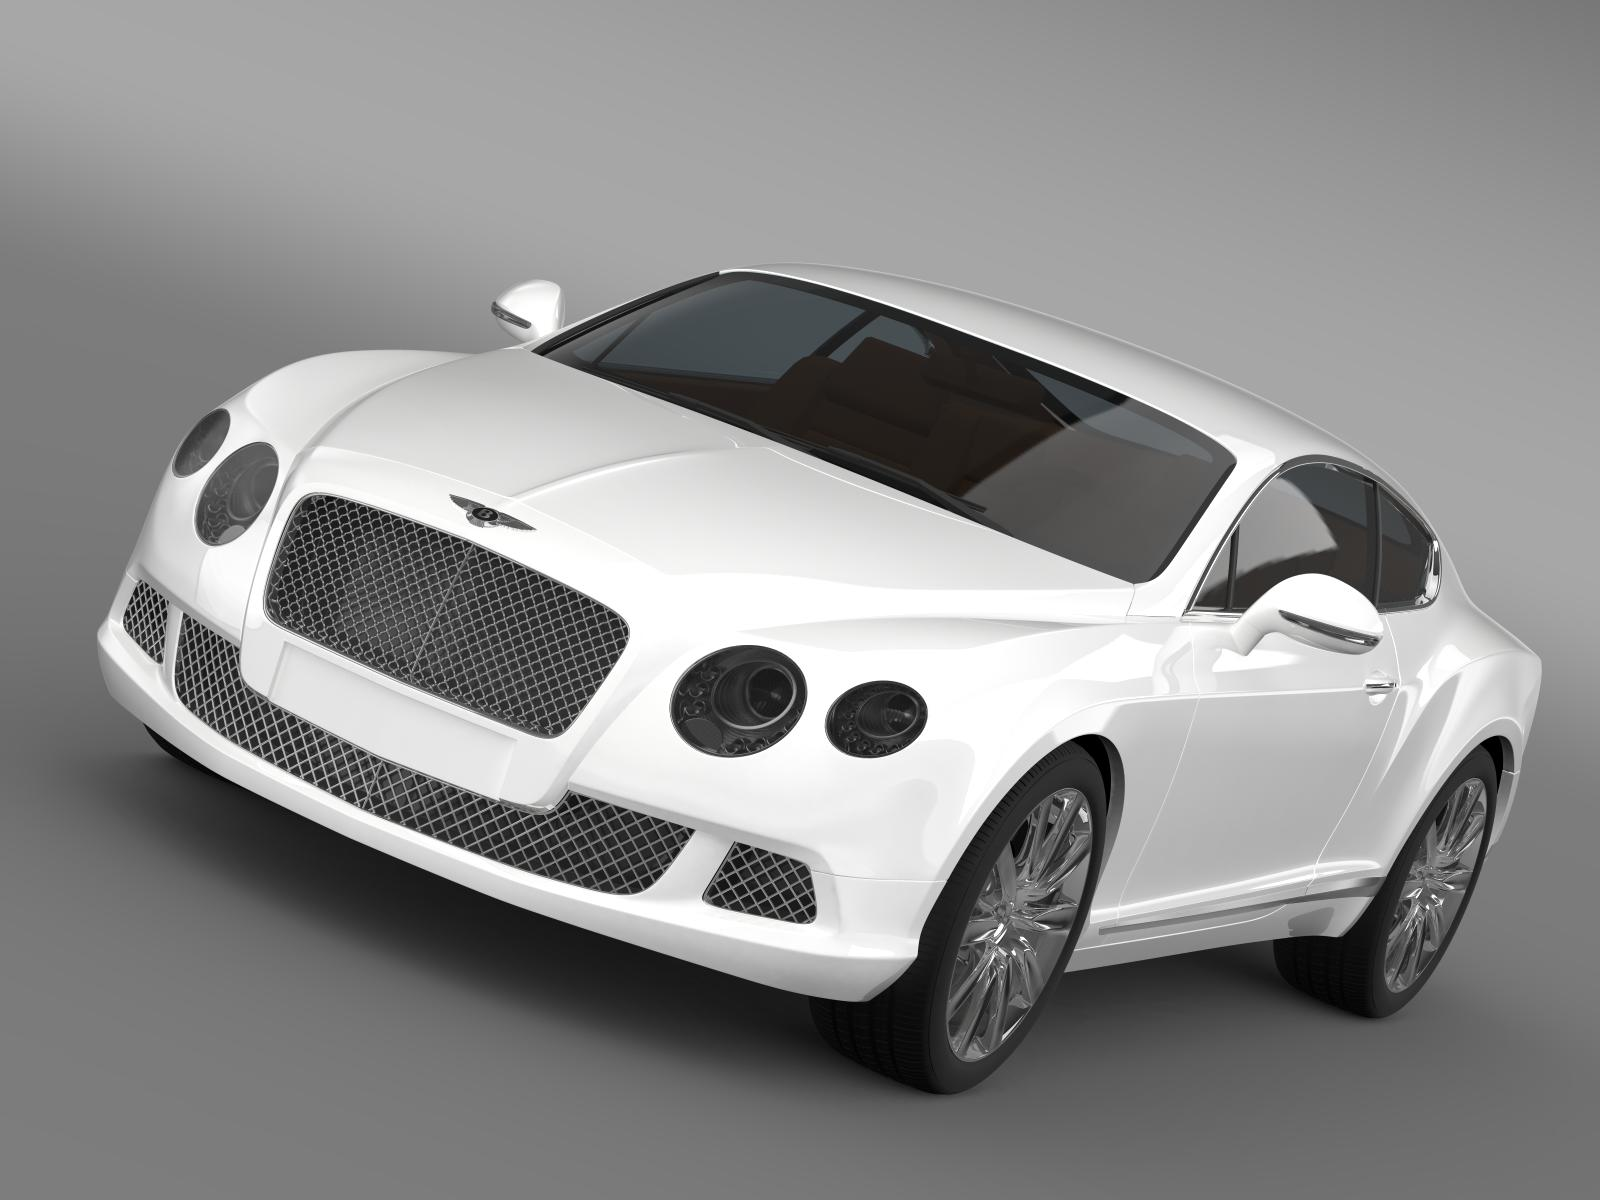 bentley continental gt promijenio / la savez iz 2011 u 3d model 3ds max fbx c4d lwo ma